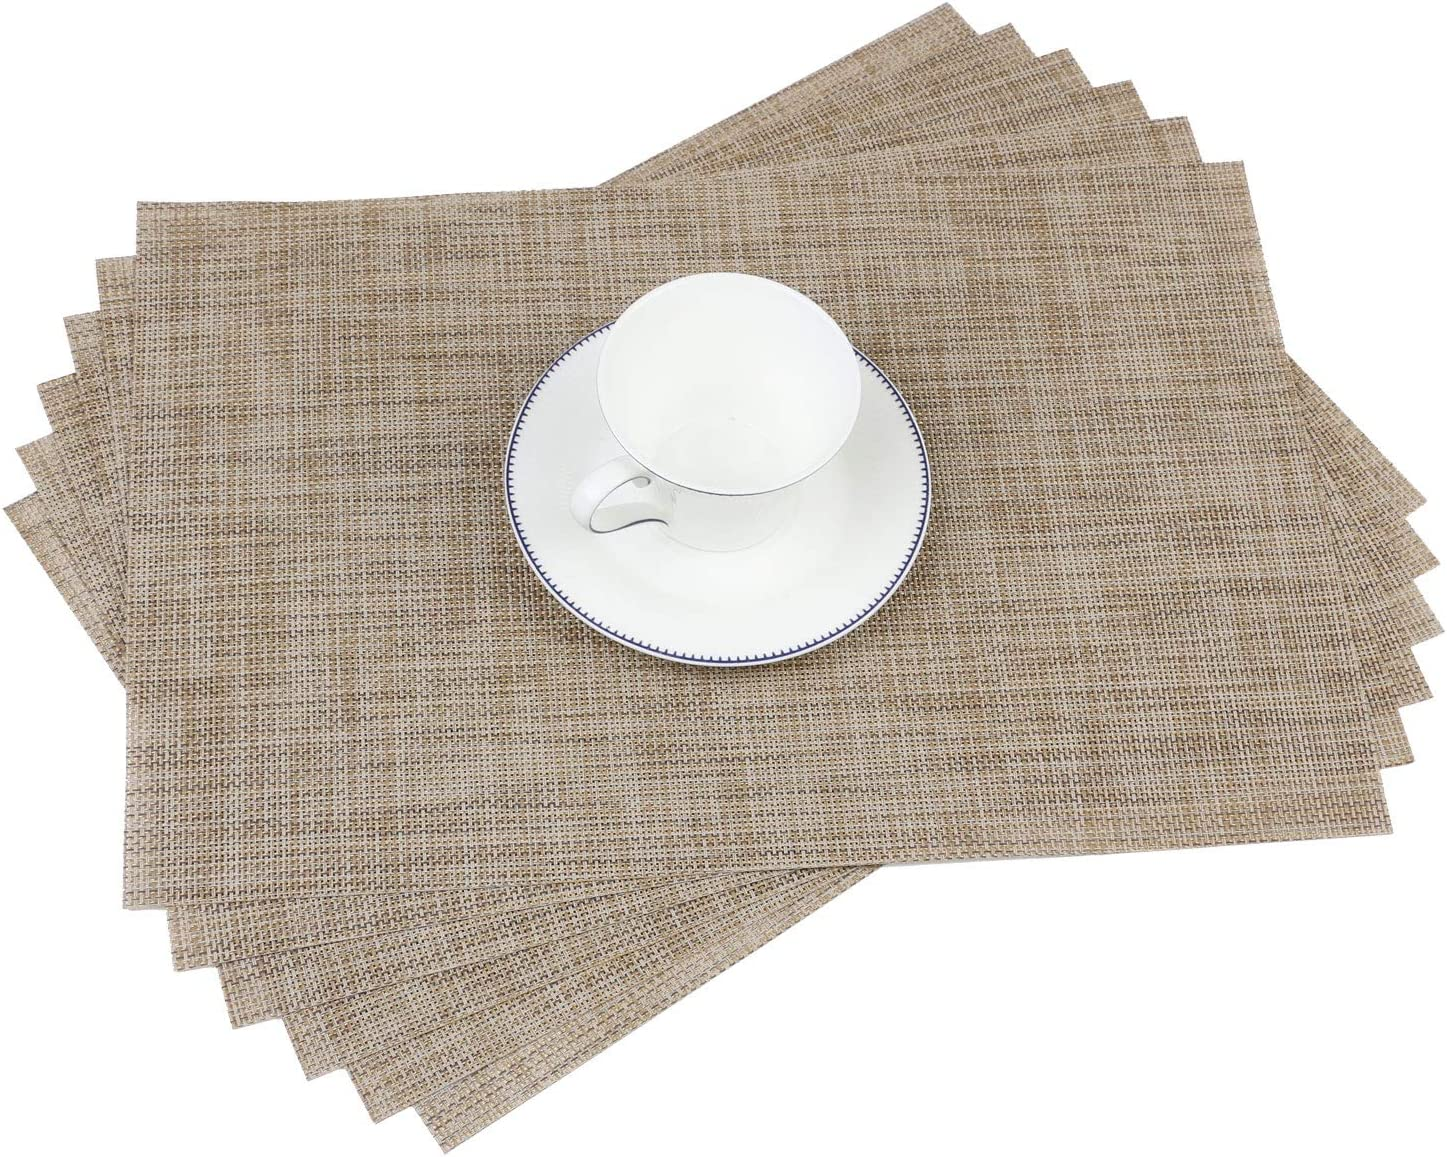 Dark Brown Homcomodar Table Place Mats and Coasters Set of 6 Plastic Placemats